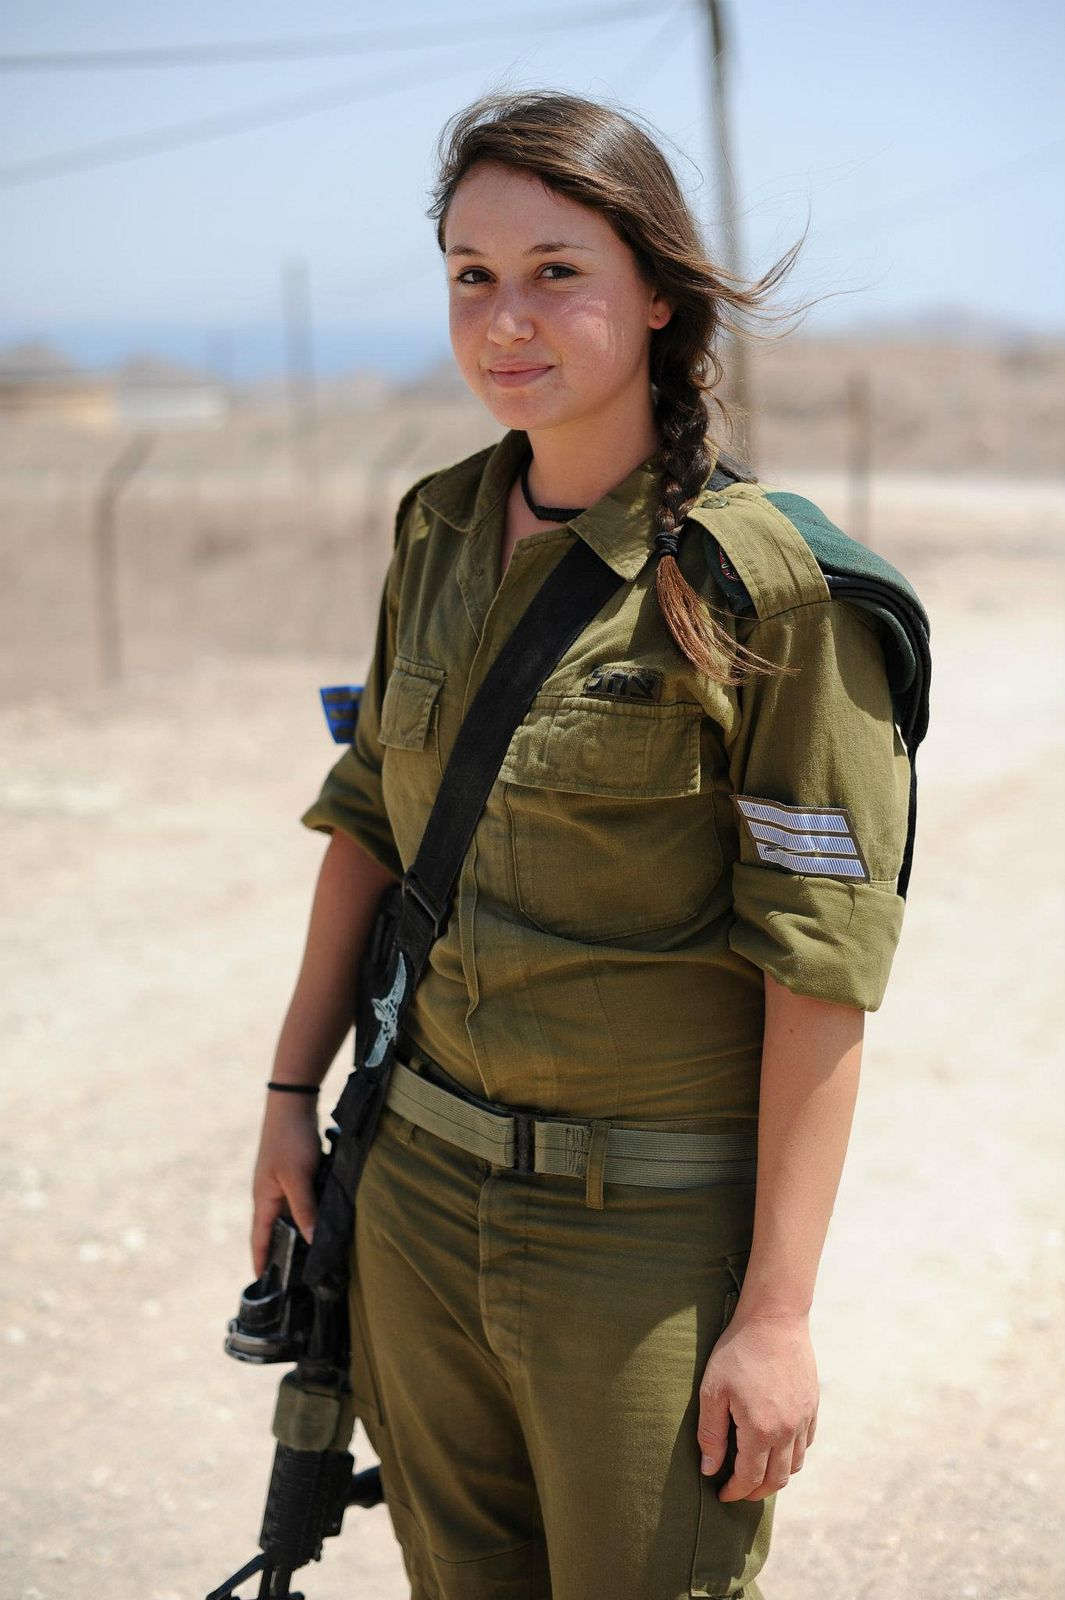 WOMEN OF THE IDF: Another Cute Woman Of The IDF